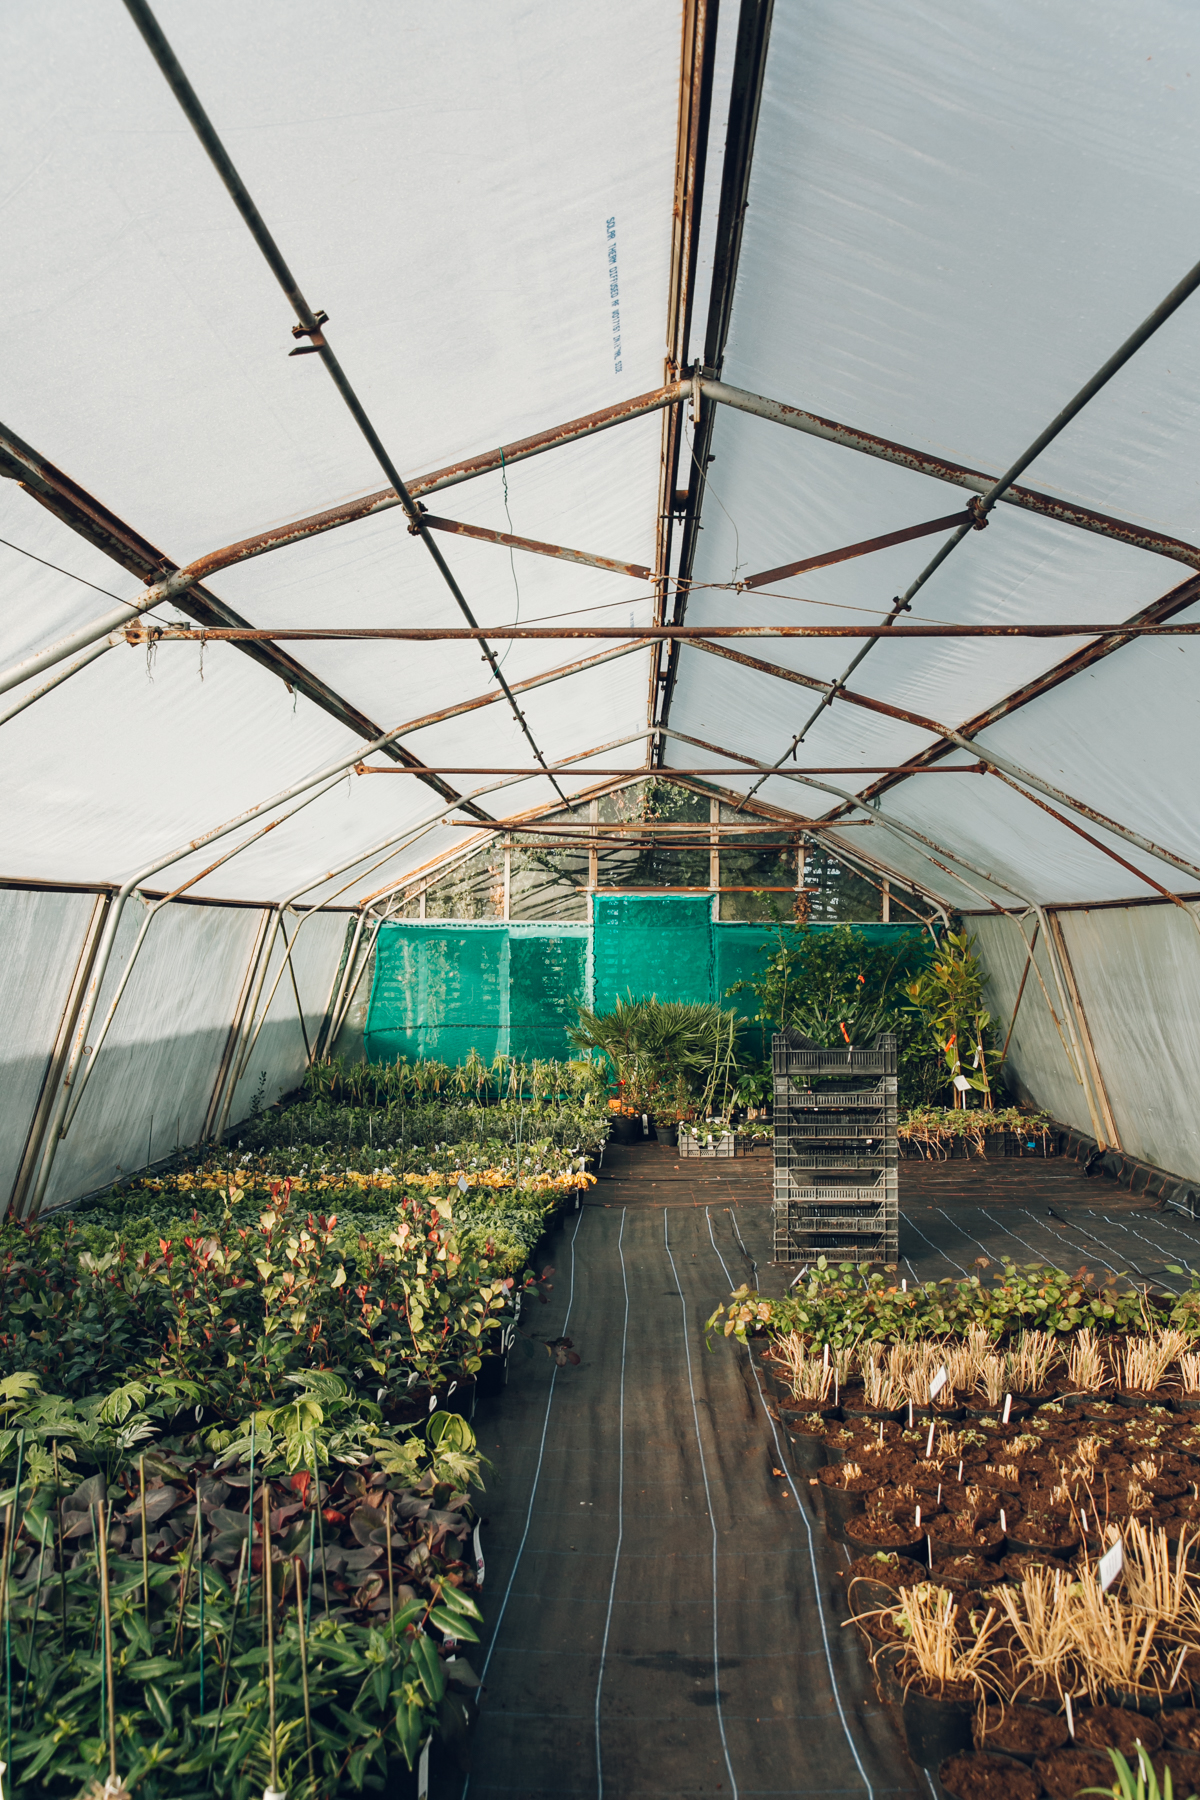 Exploring the plants in the polytunnel at Urban Jungle near Norwich.